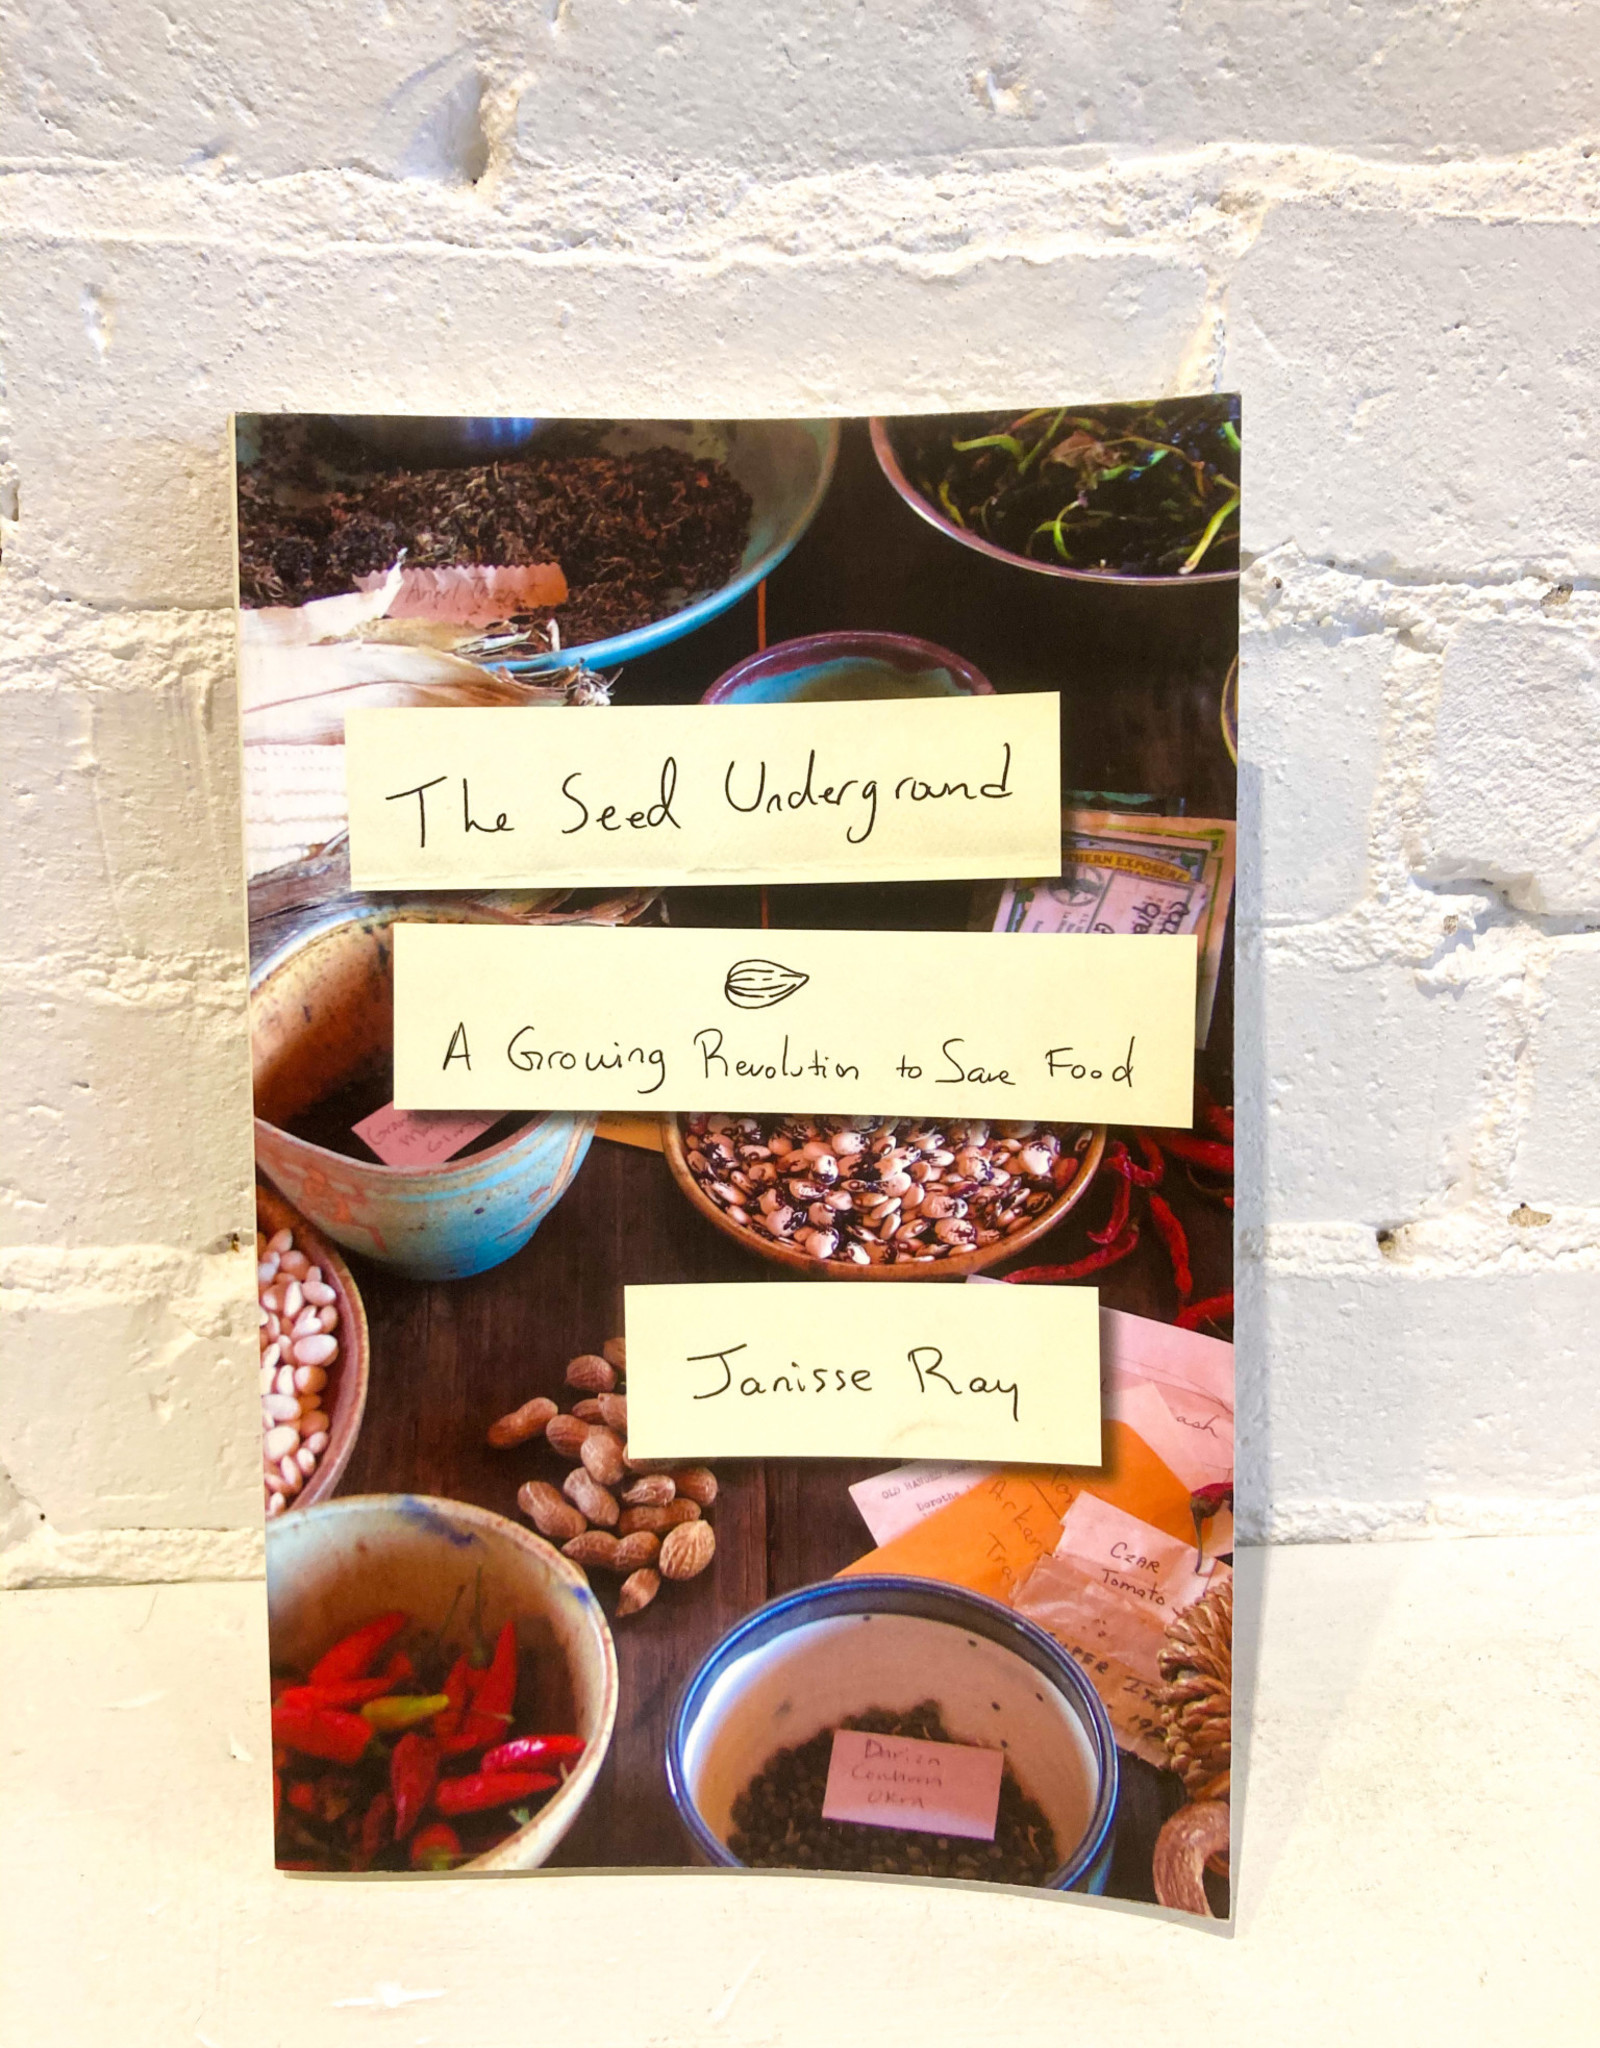 The Seed Underground by Janisse Ray